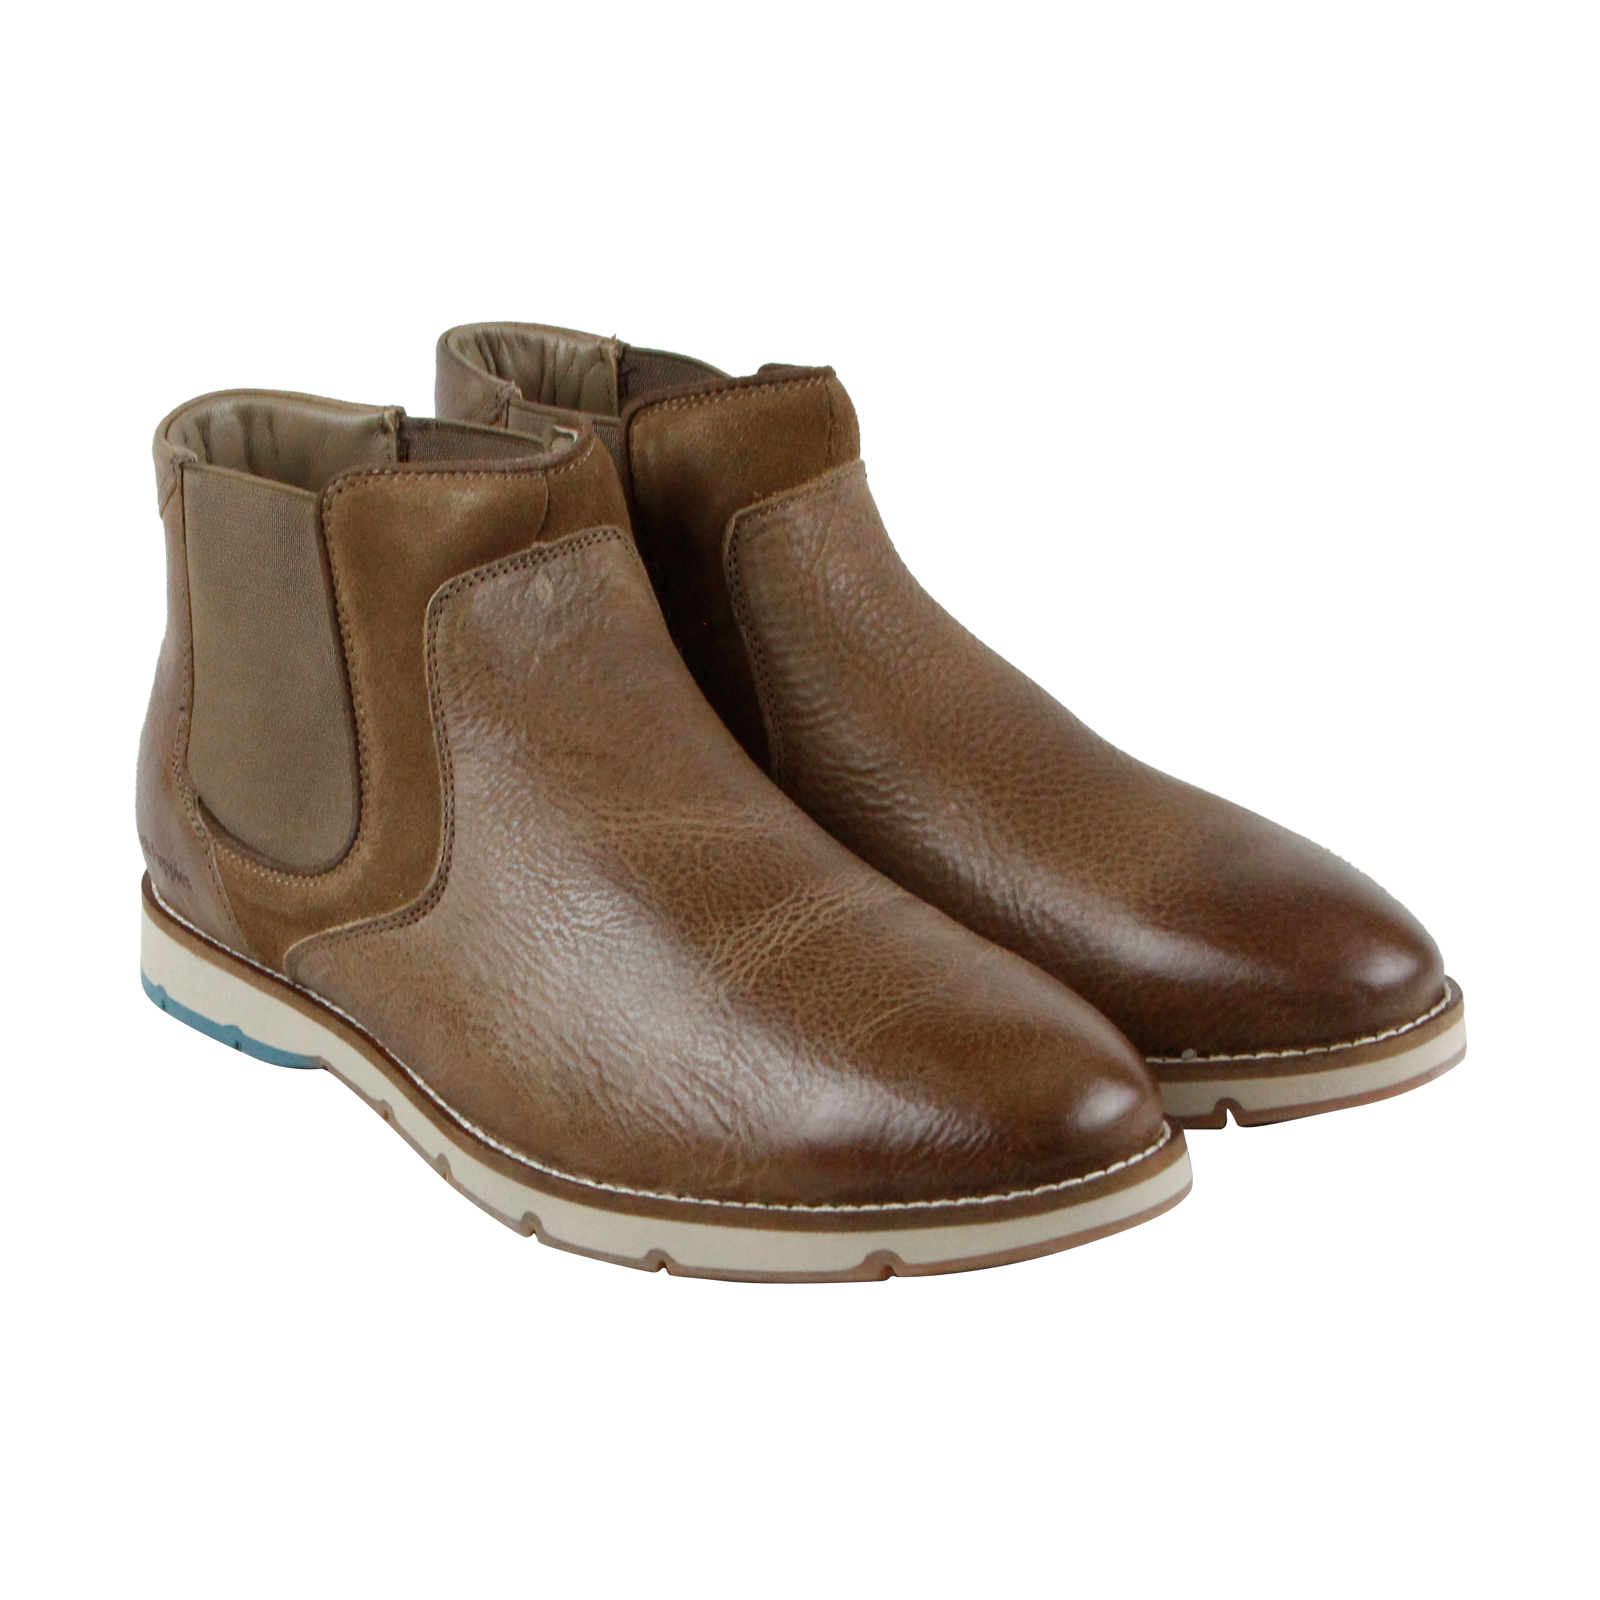 Hush Puppies Burwell Hayes Mens Brown Leather Casual Dress Boots Shoes by